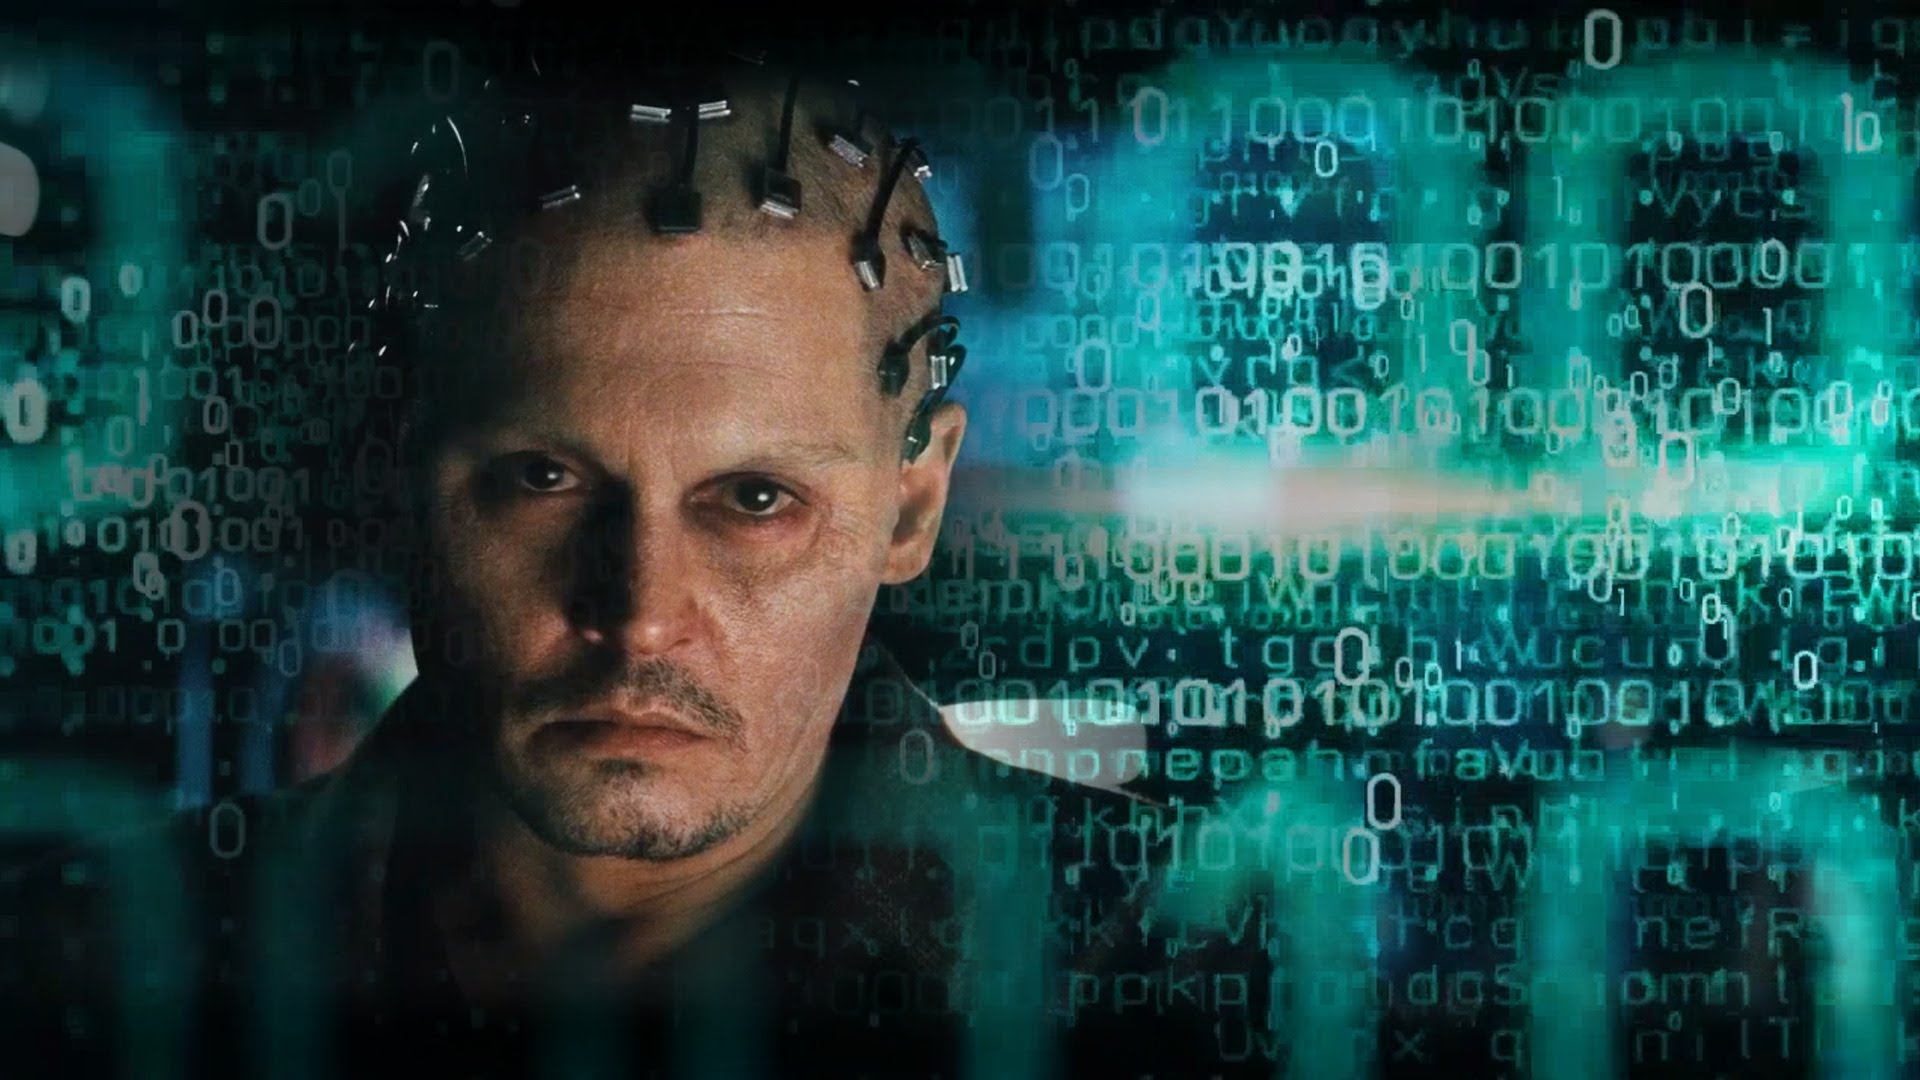 johnny-depp-in-transcendence-movie-2014-wallpaper-533456002d90b-transcendence-drops-not-one-not-two-but-seven-new-clips